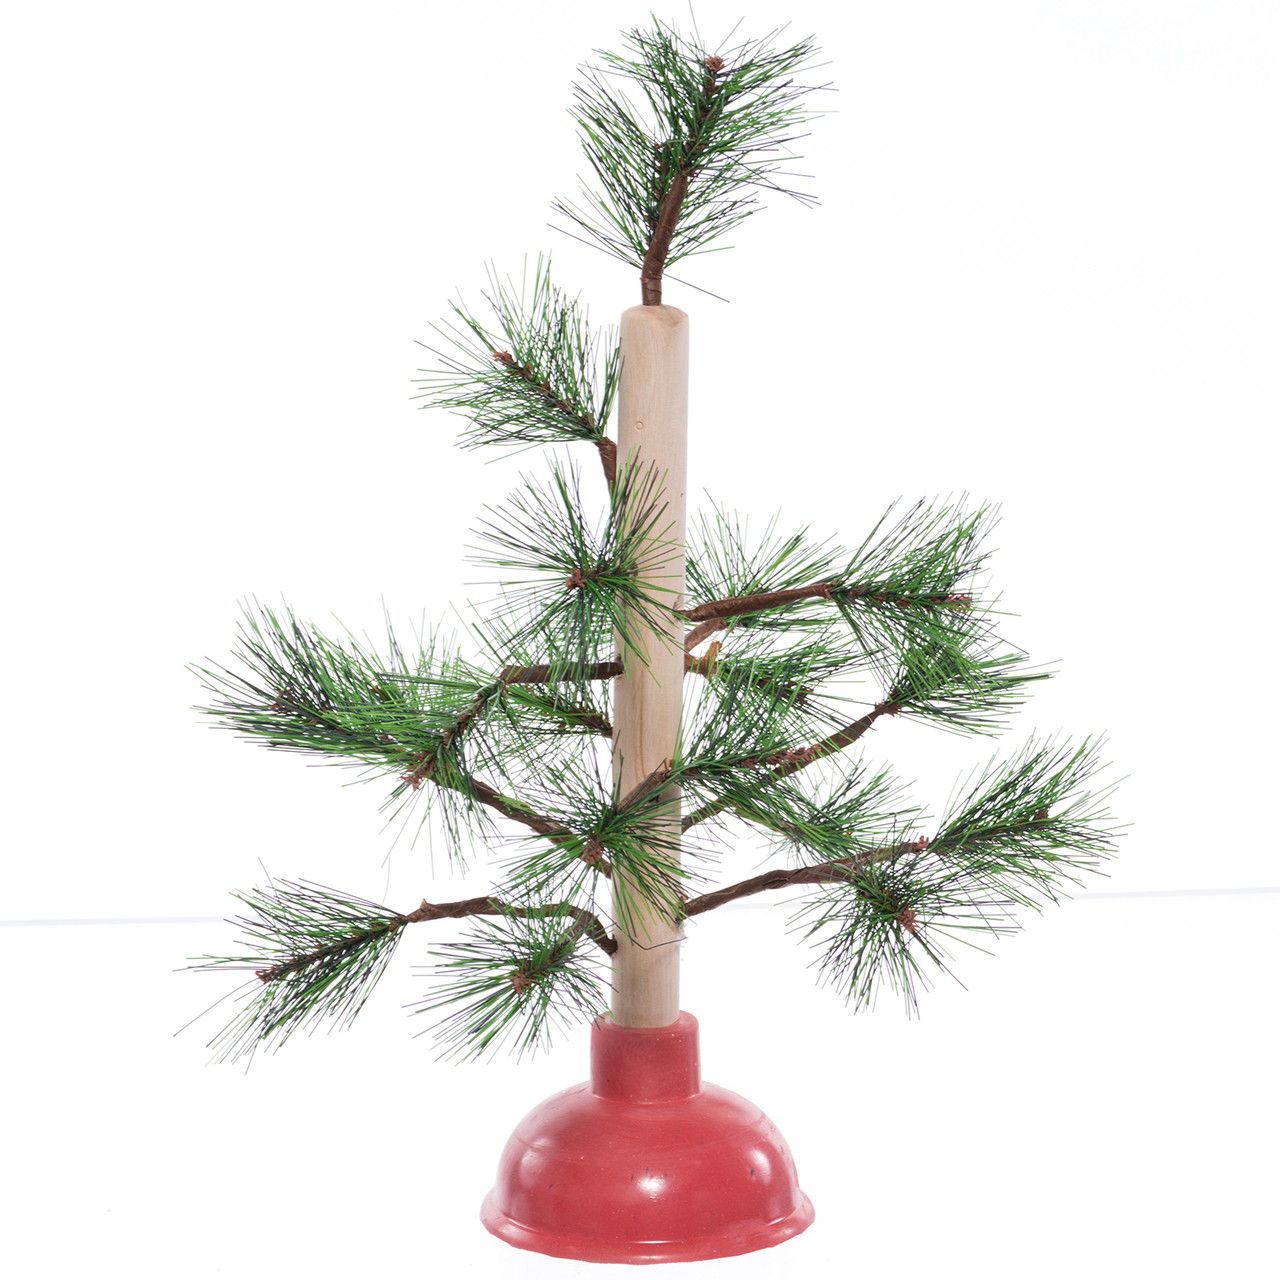 Redneck Toilet Plunger Christmas Tree box